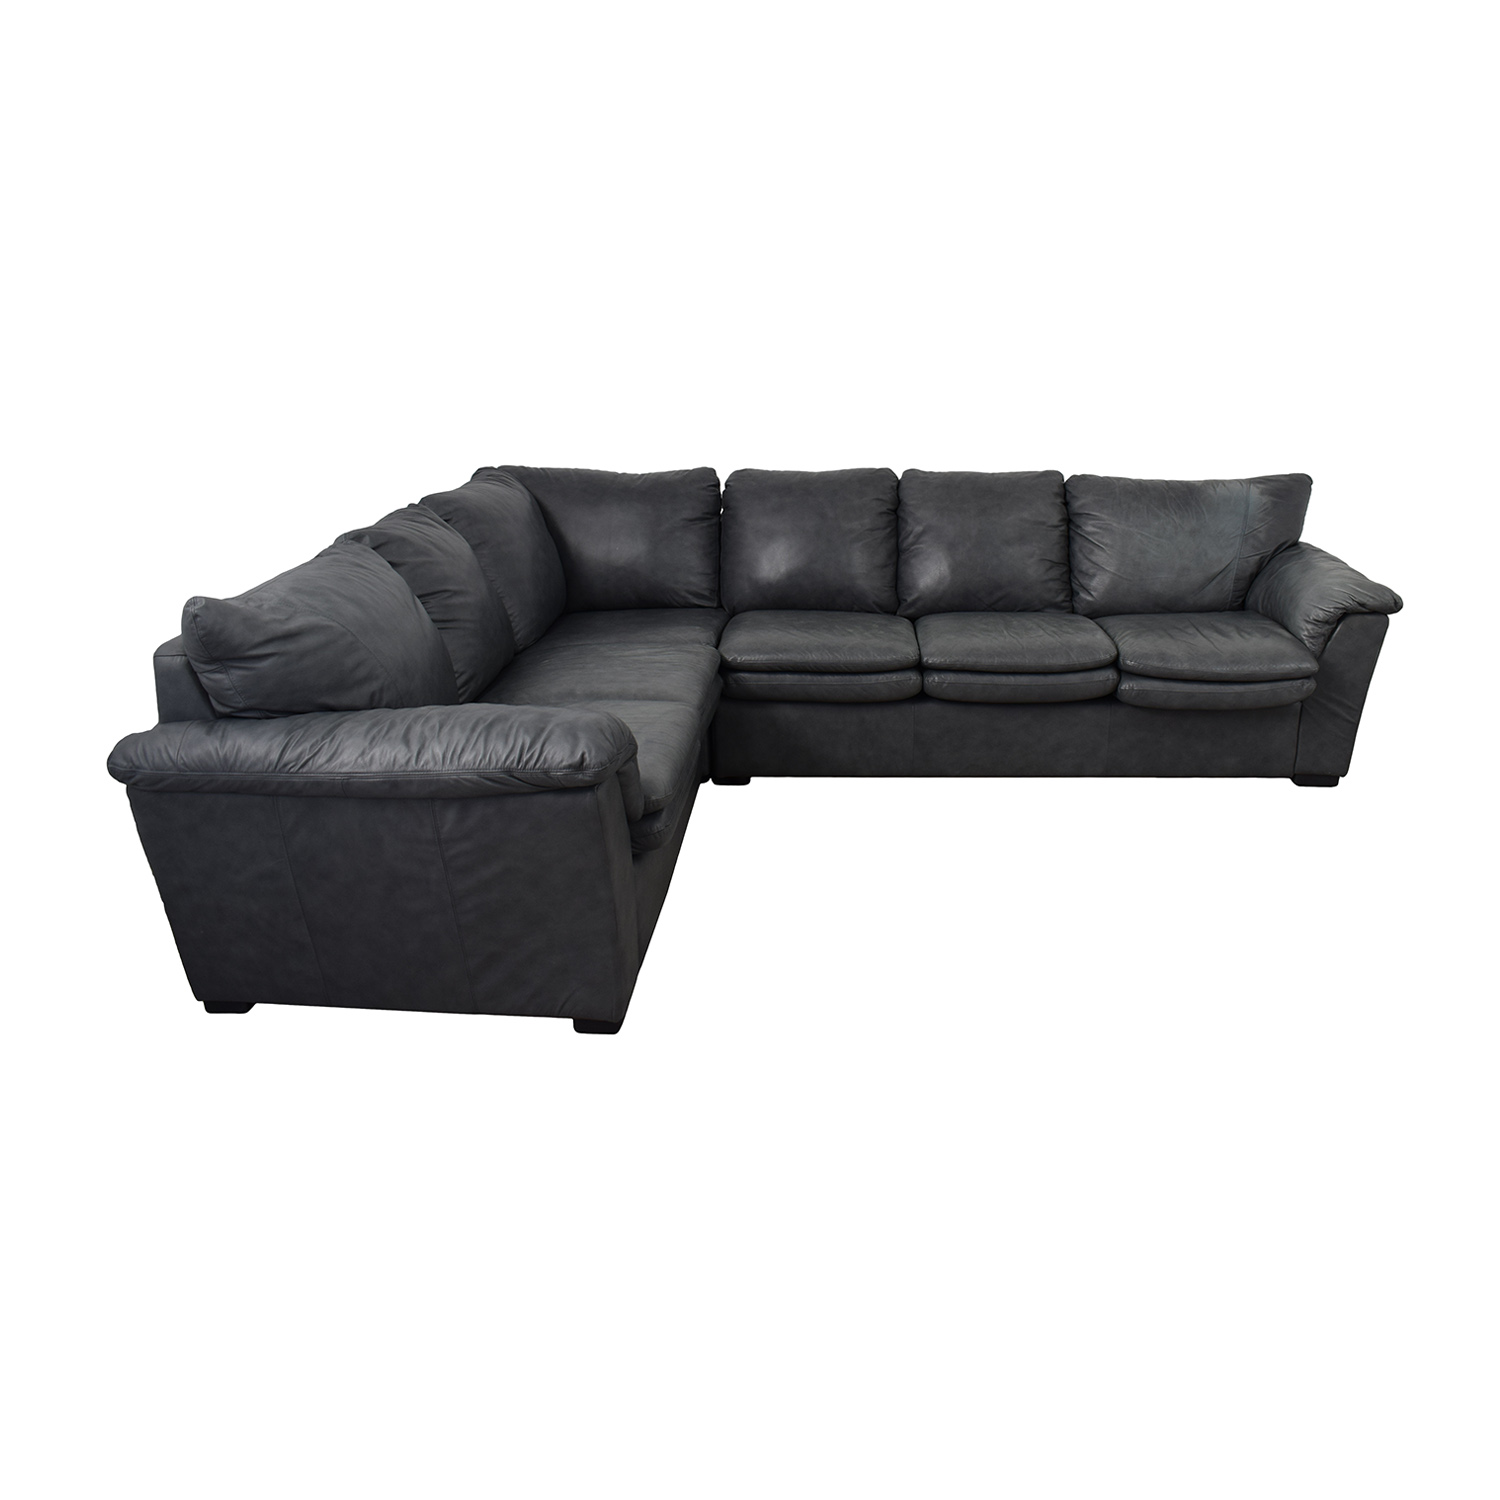 Jaymar Furniture Charcoal Leather L Shaped Sectional Sofas